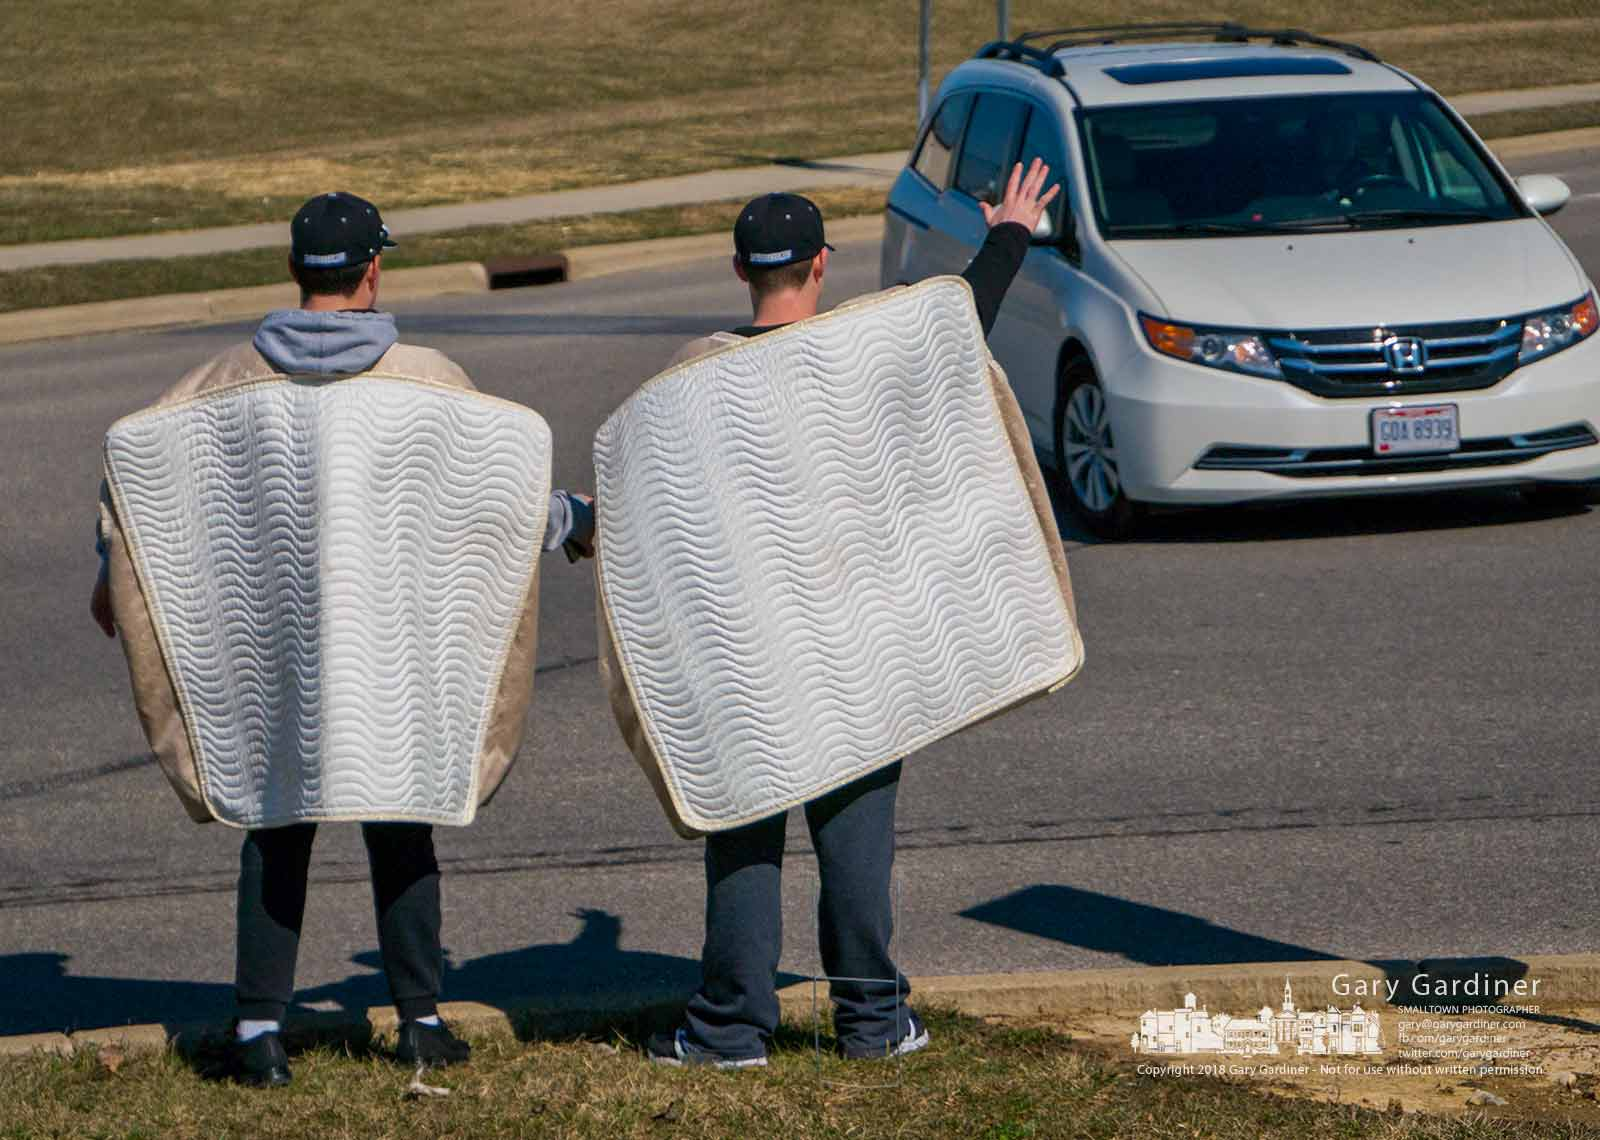 A pair of Westerville Central students wearing mattress covers stand at the entrance to the school to attract shoppers to the annual track and baseball fundraiser. My Final Photo for March 10, 2018.